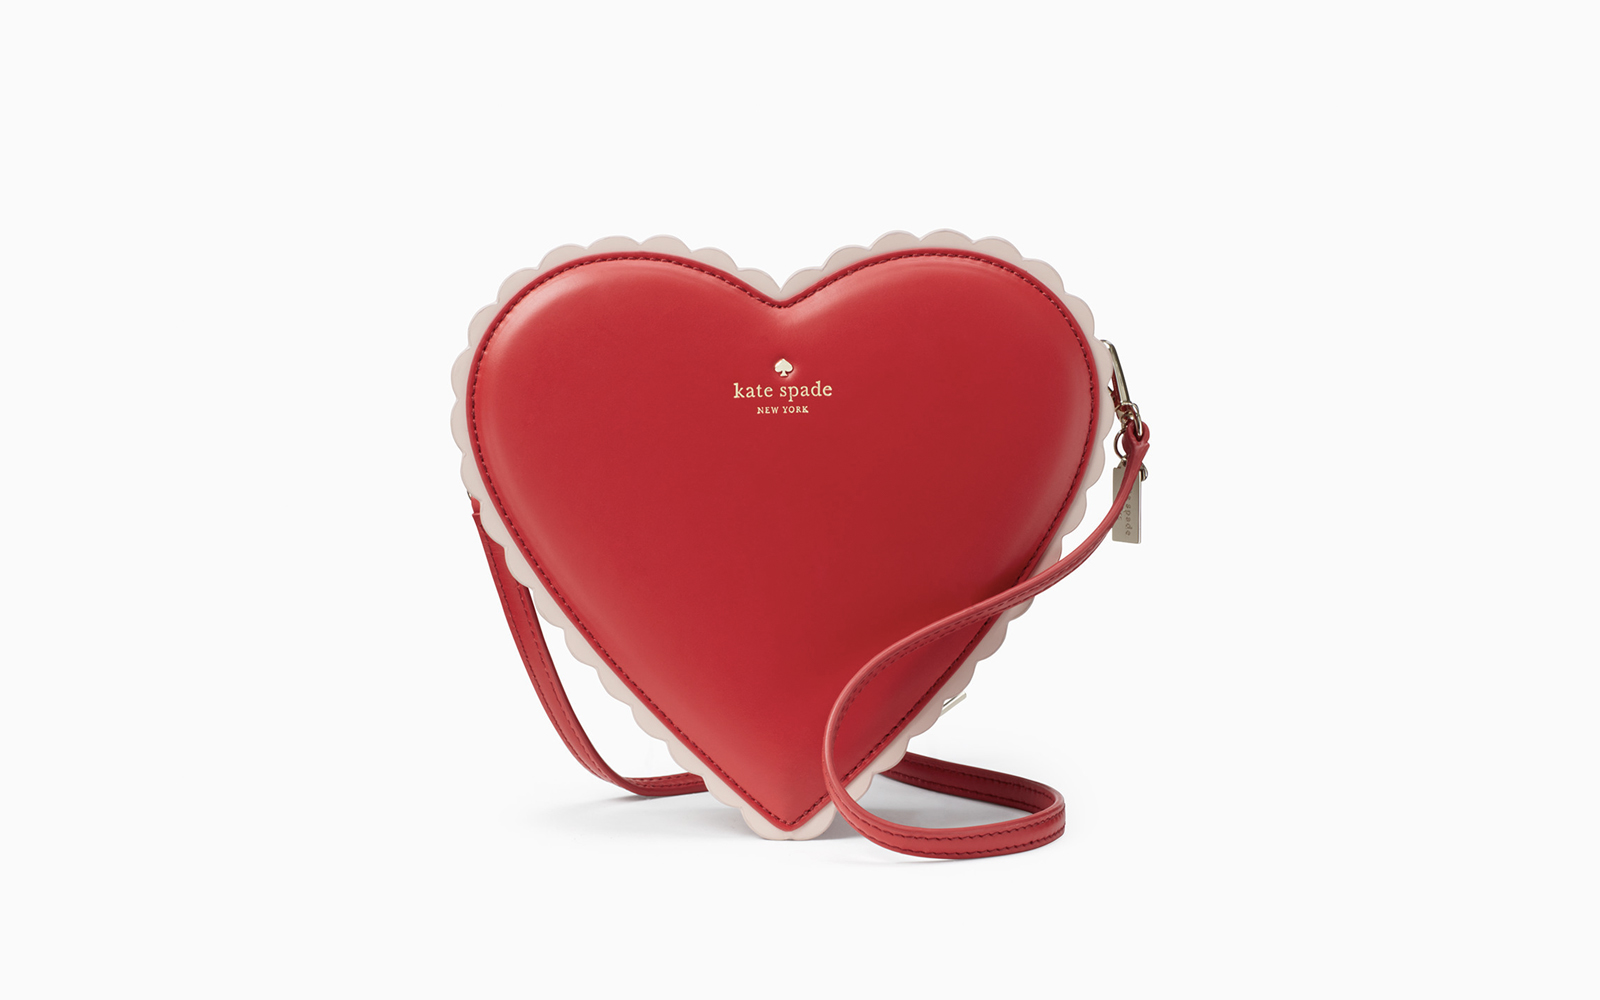 Kate Spade Valentine's Day Gift Guide